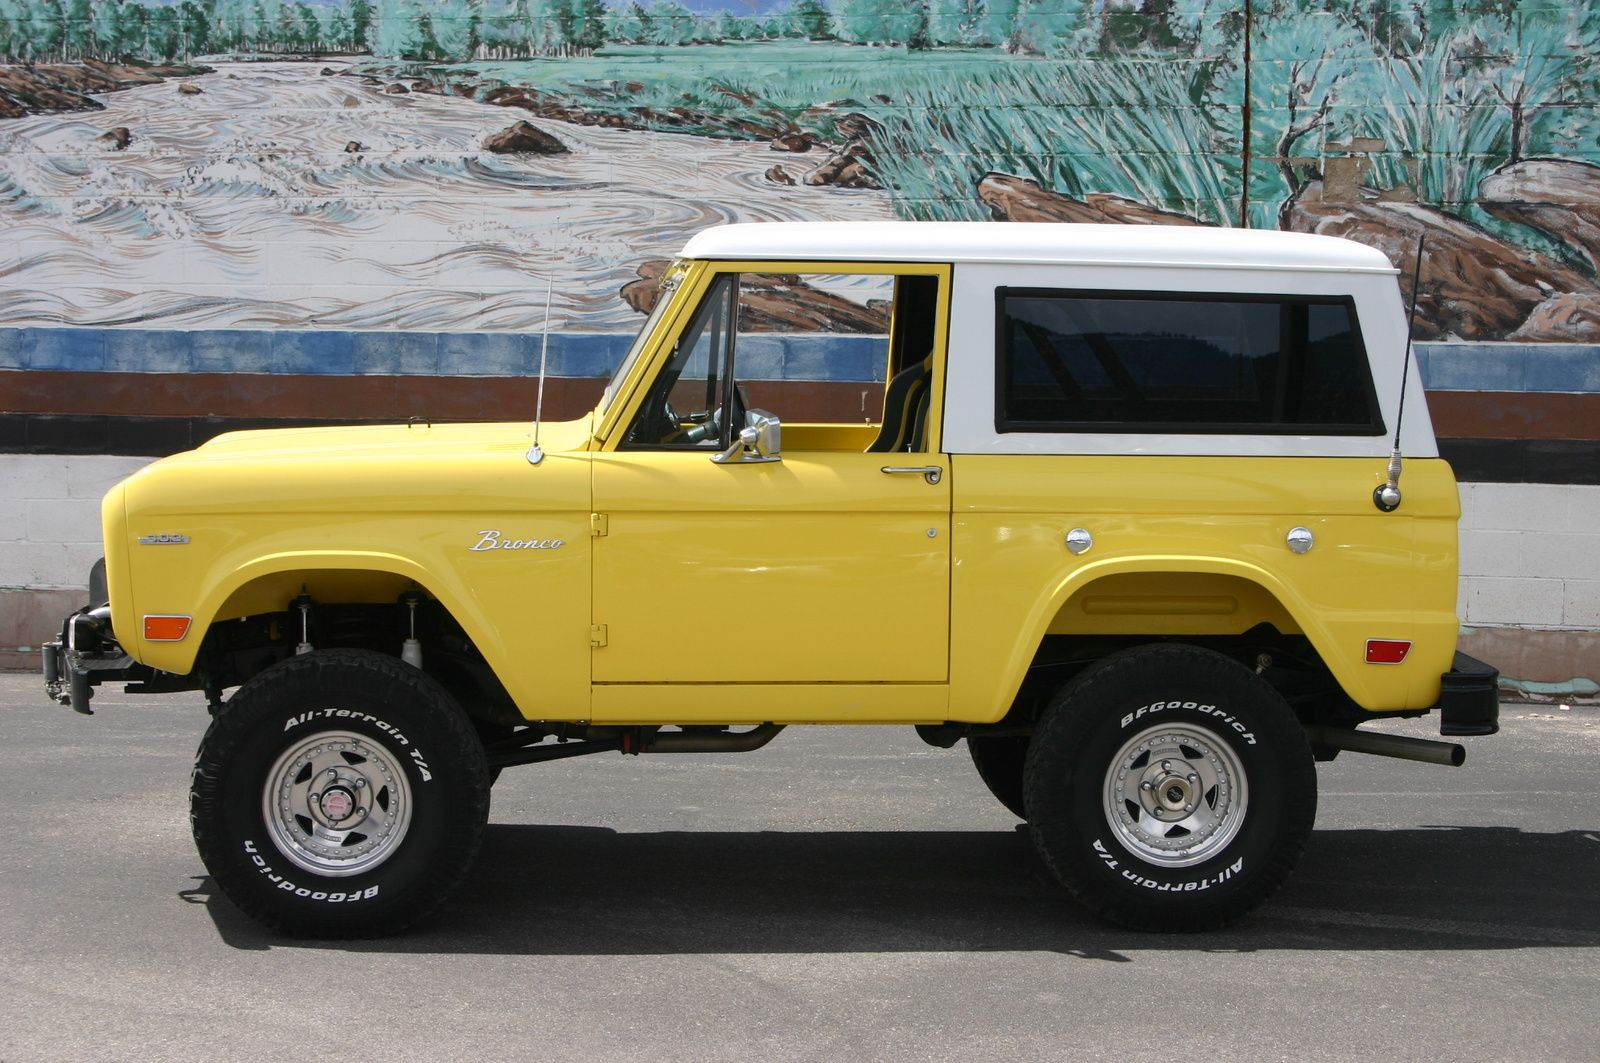 Ford Bronco Picture Of 1968 Ford Bronco Exterior Ford Bronco